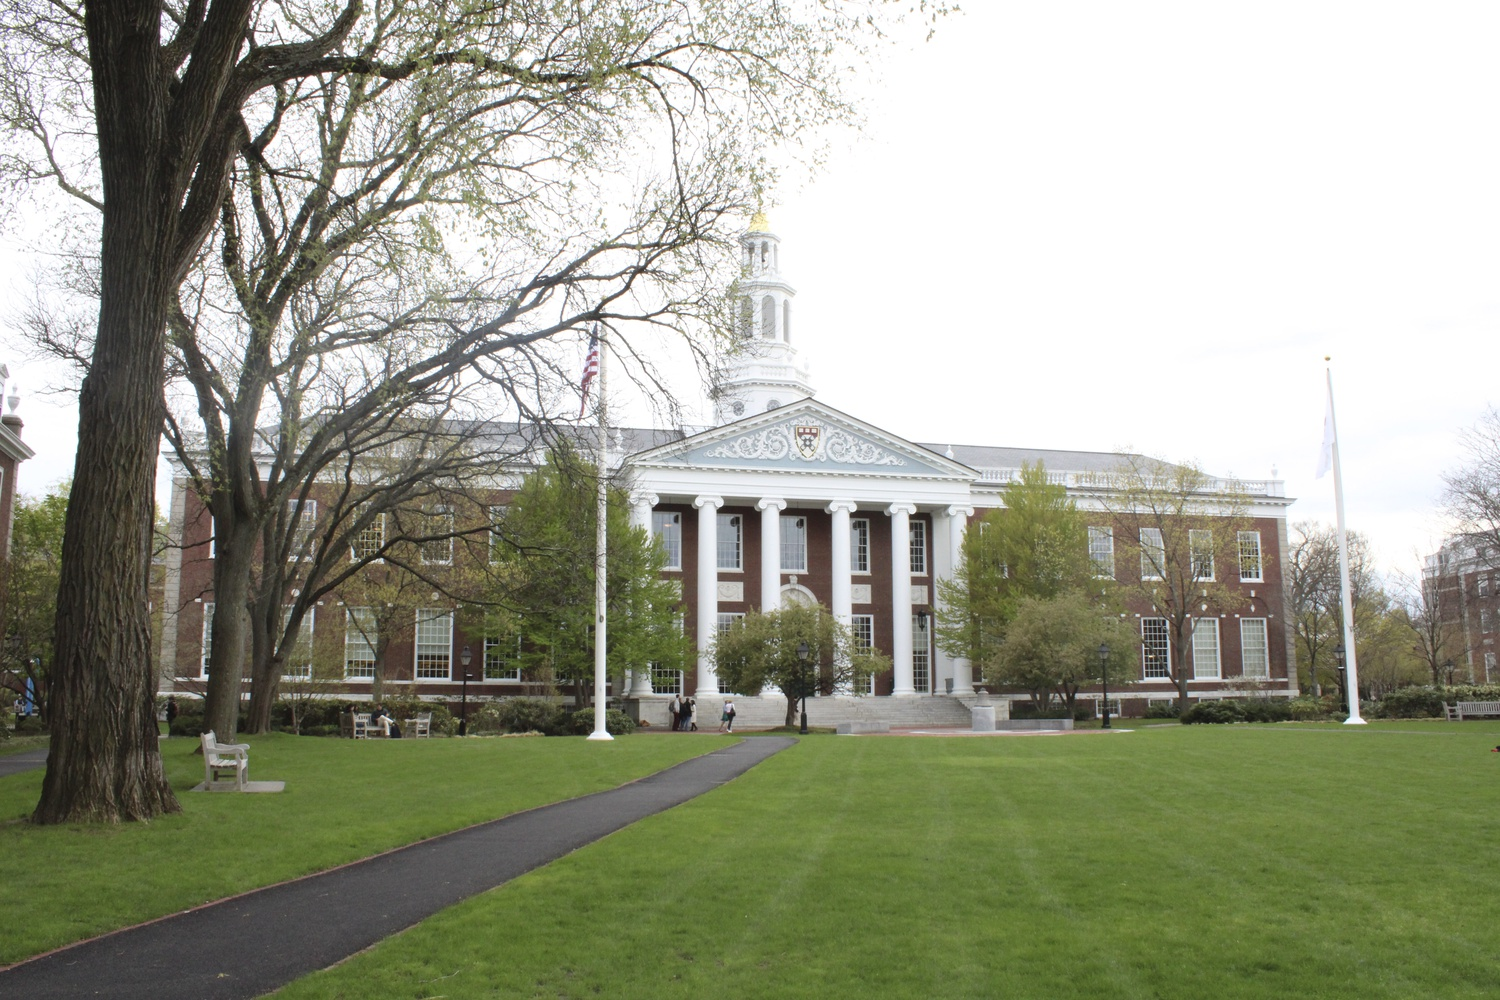 The Harvard Business School launched an investigation after threatening emails were sent to members of the African American Students Union in March.